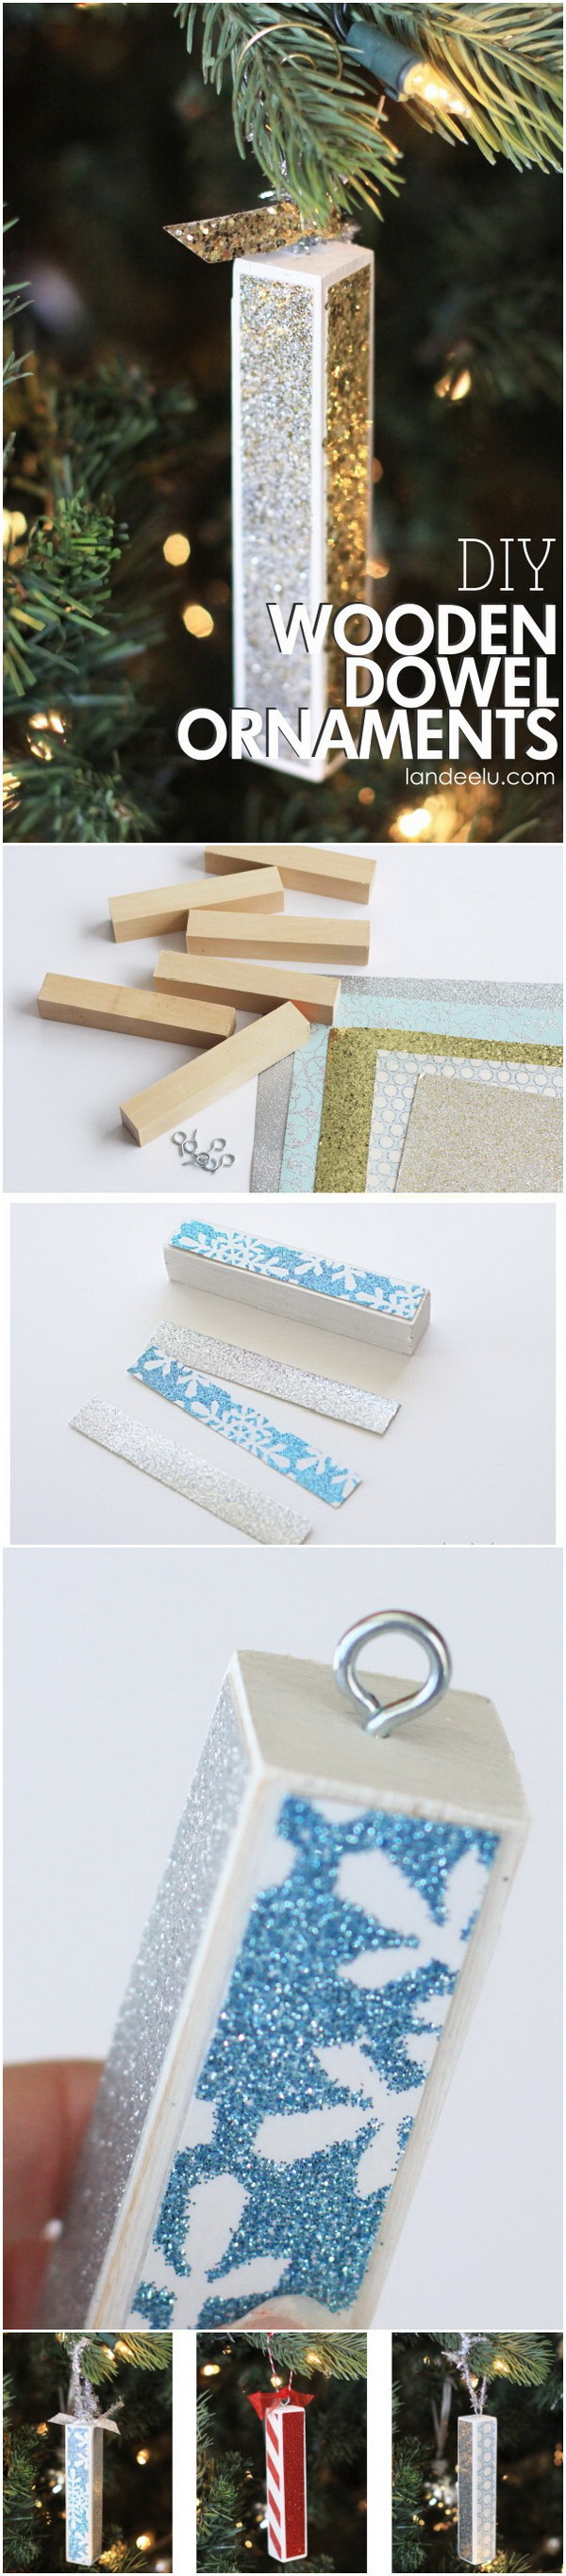 Wood Dowel DIY Christmas Tree Ornaments. These wood dowel ornaments are super easy & cheap to make. What you need are some wood dowels, some pieces of pretty, festive assorted scrapbook paper and paint.